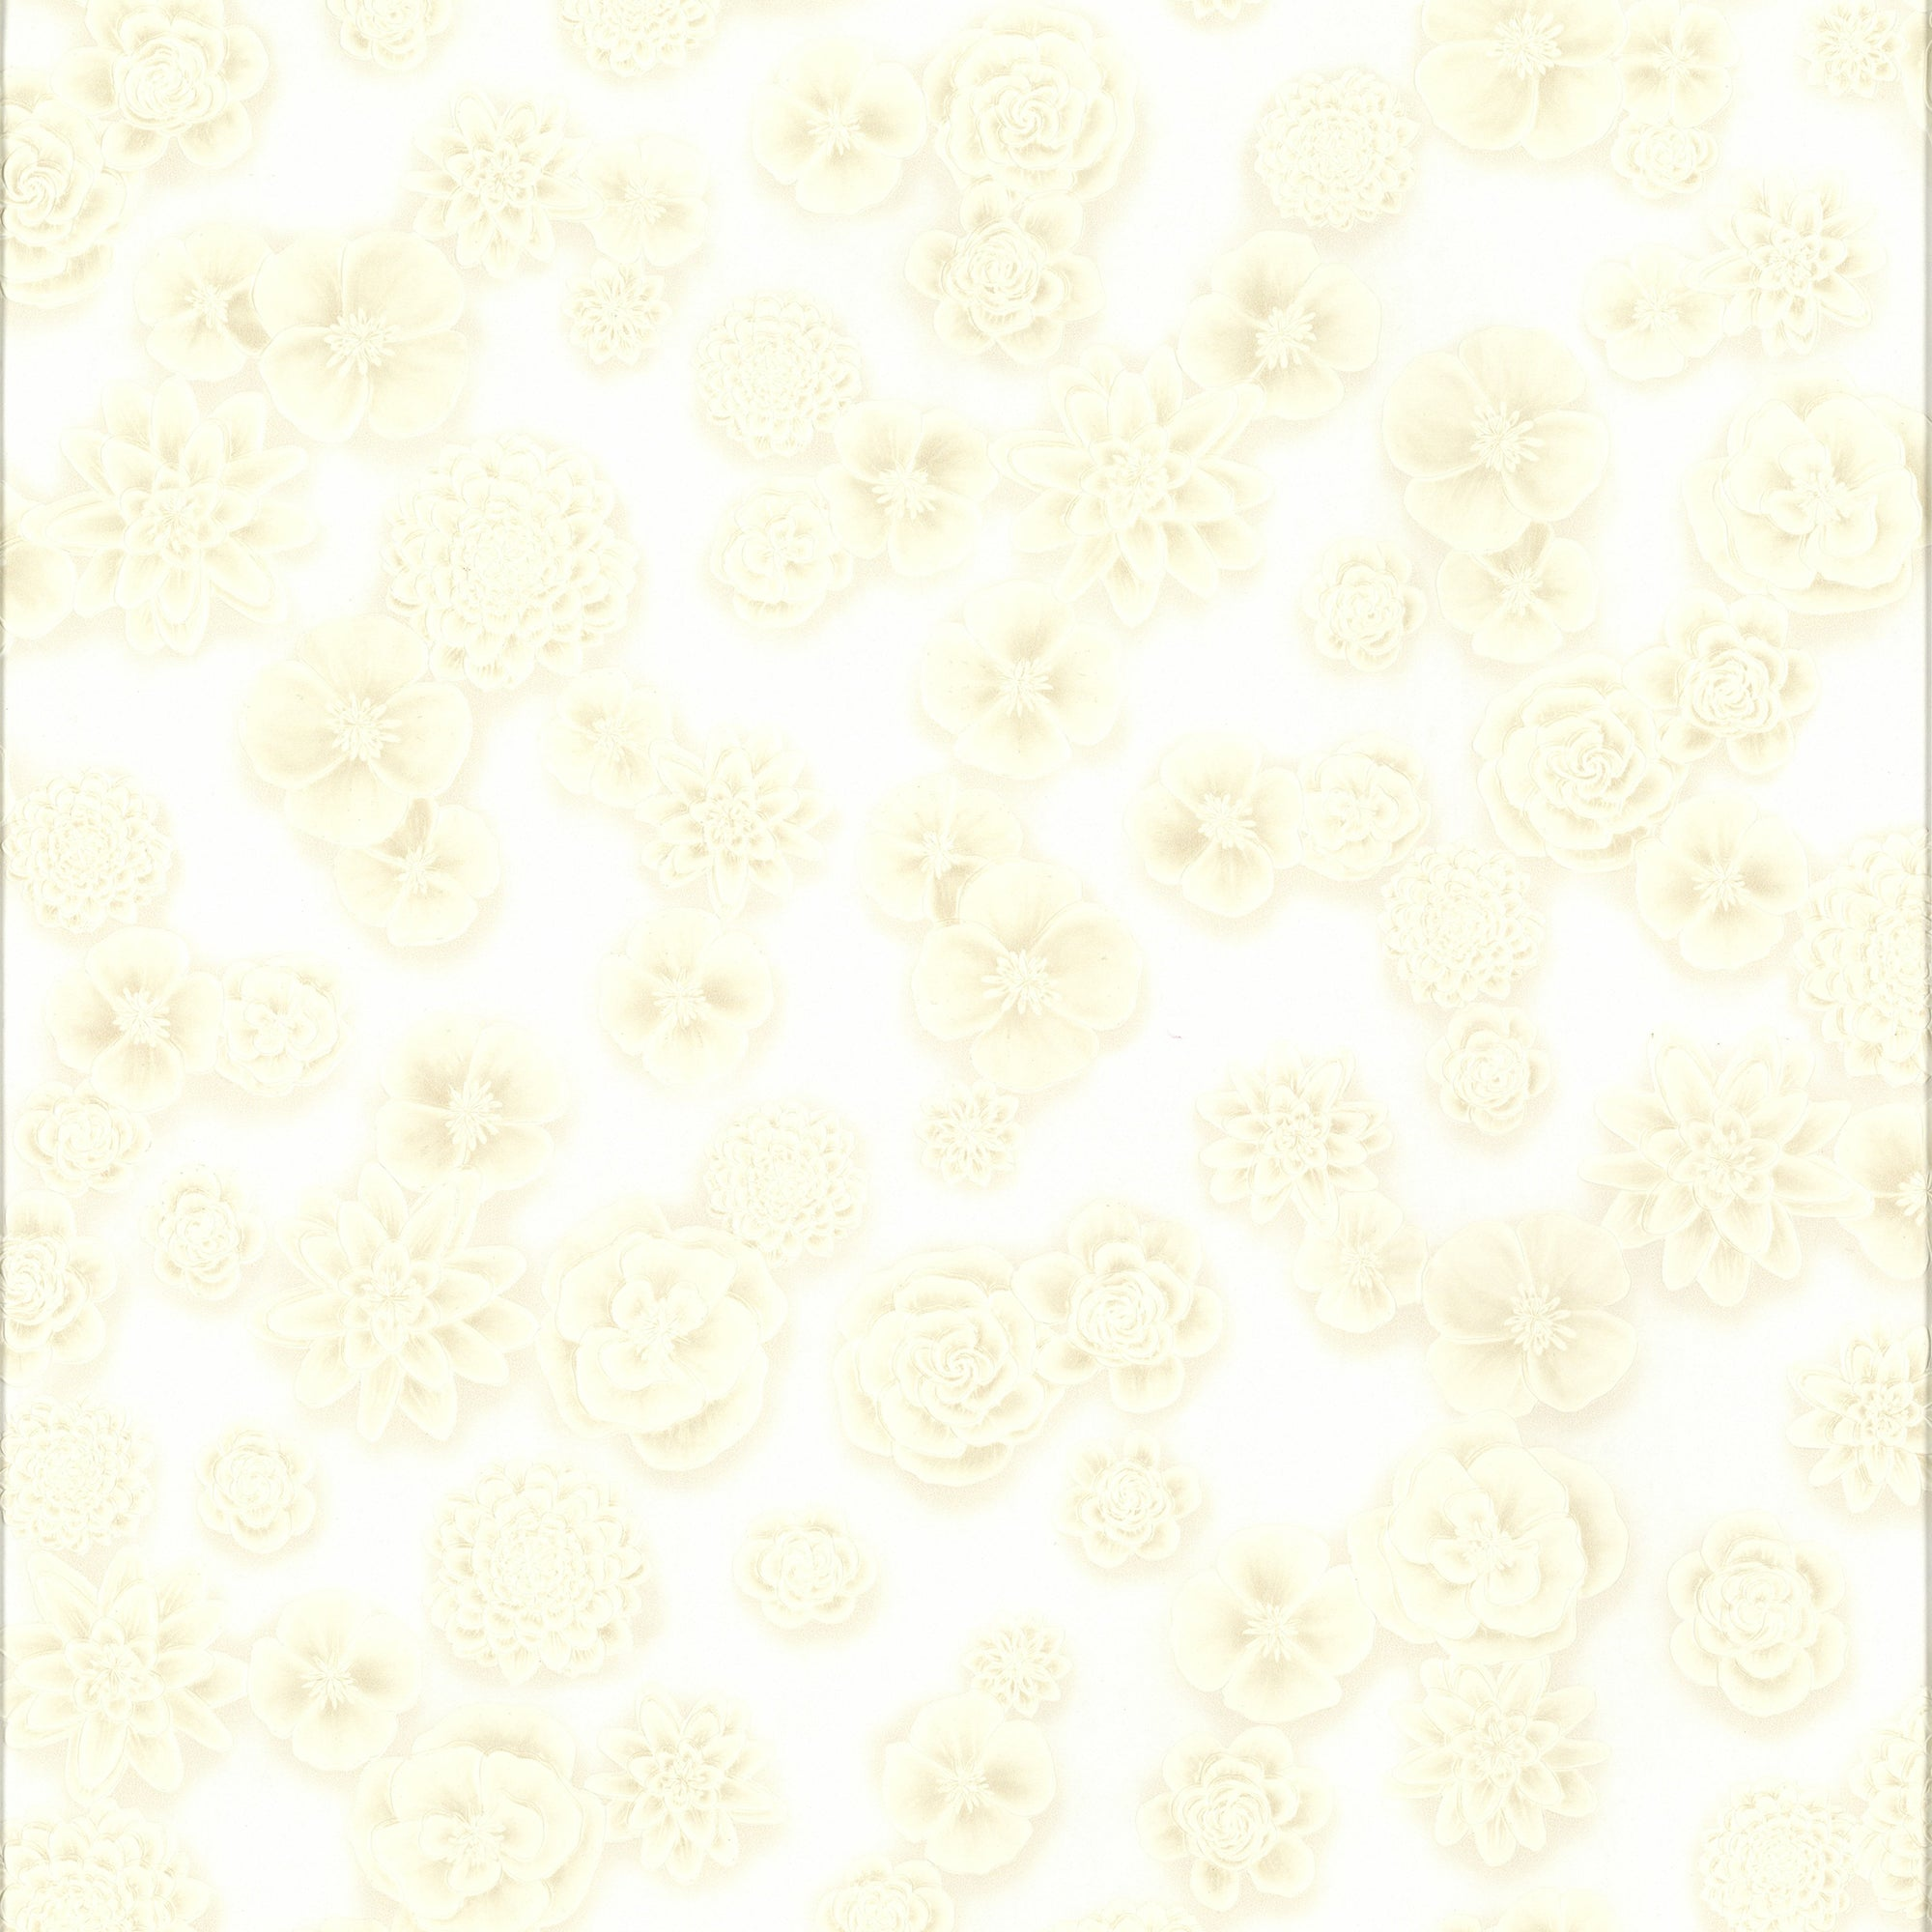 Ashford House Posy Wallpaper - Silver